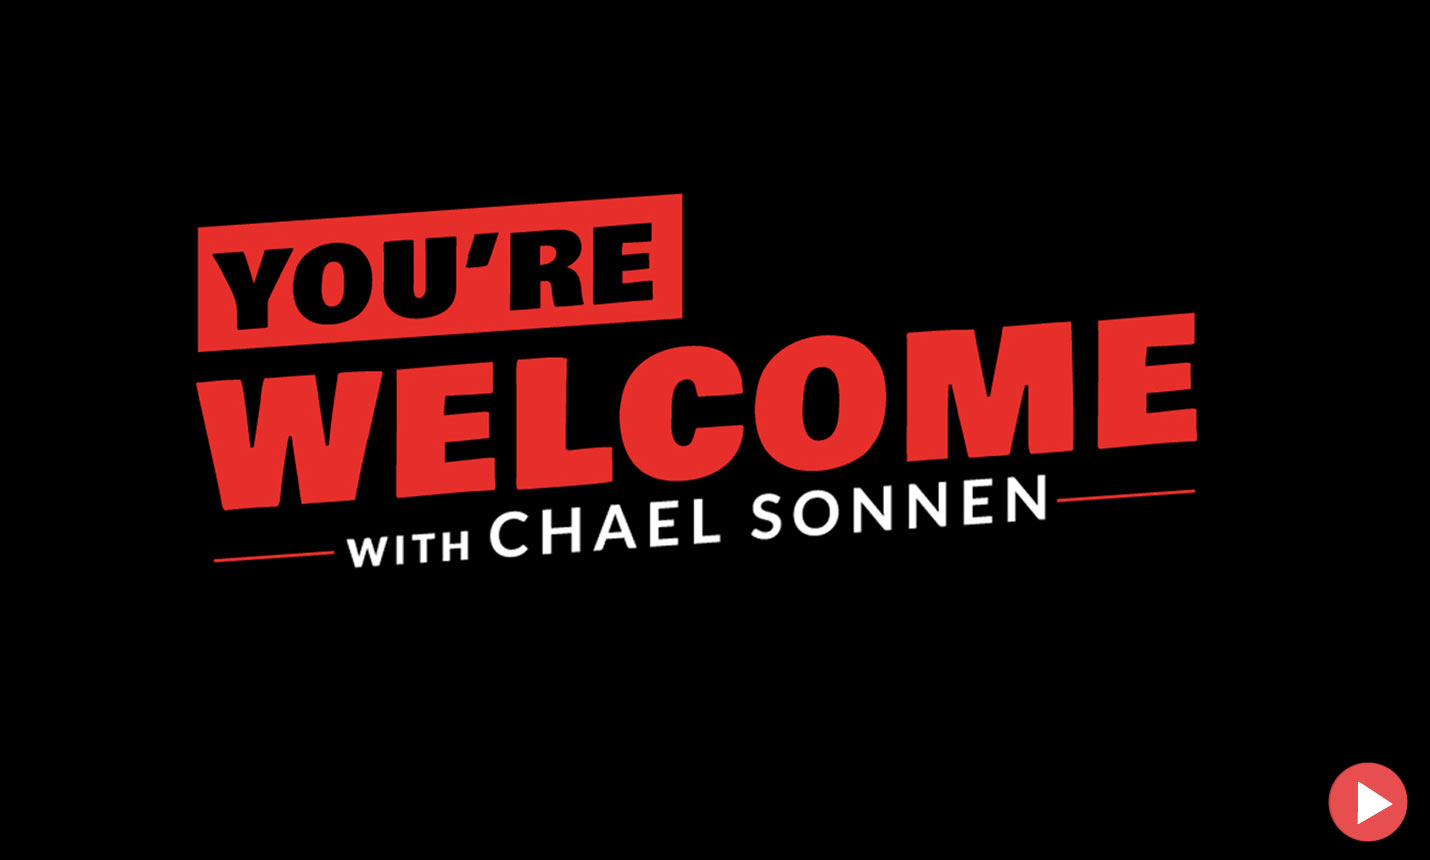 You're Welcome with Chael Sonnen